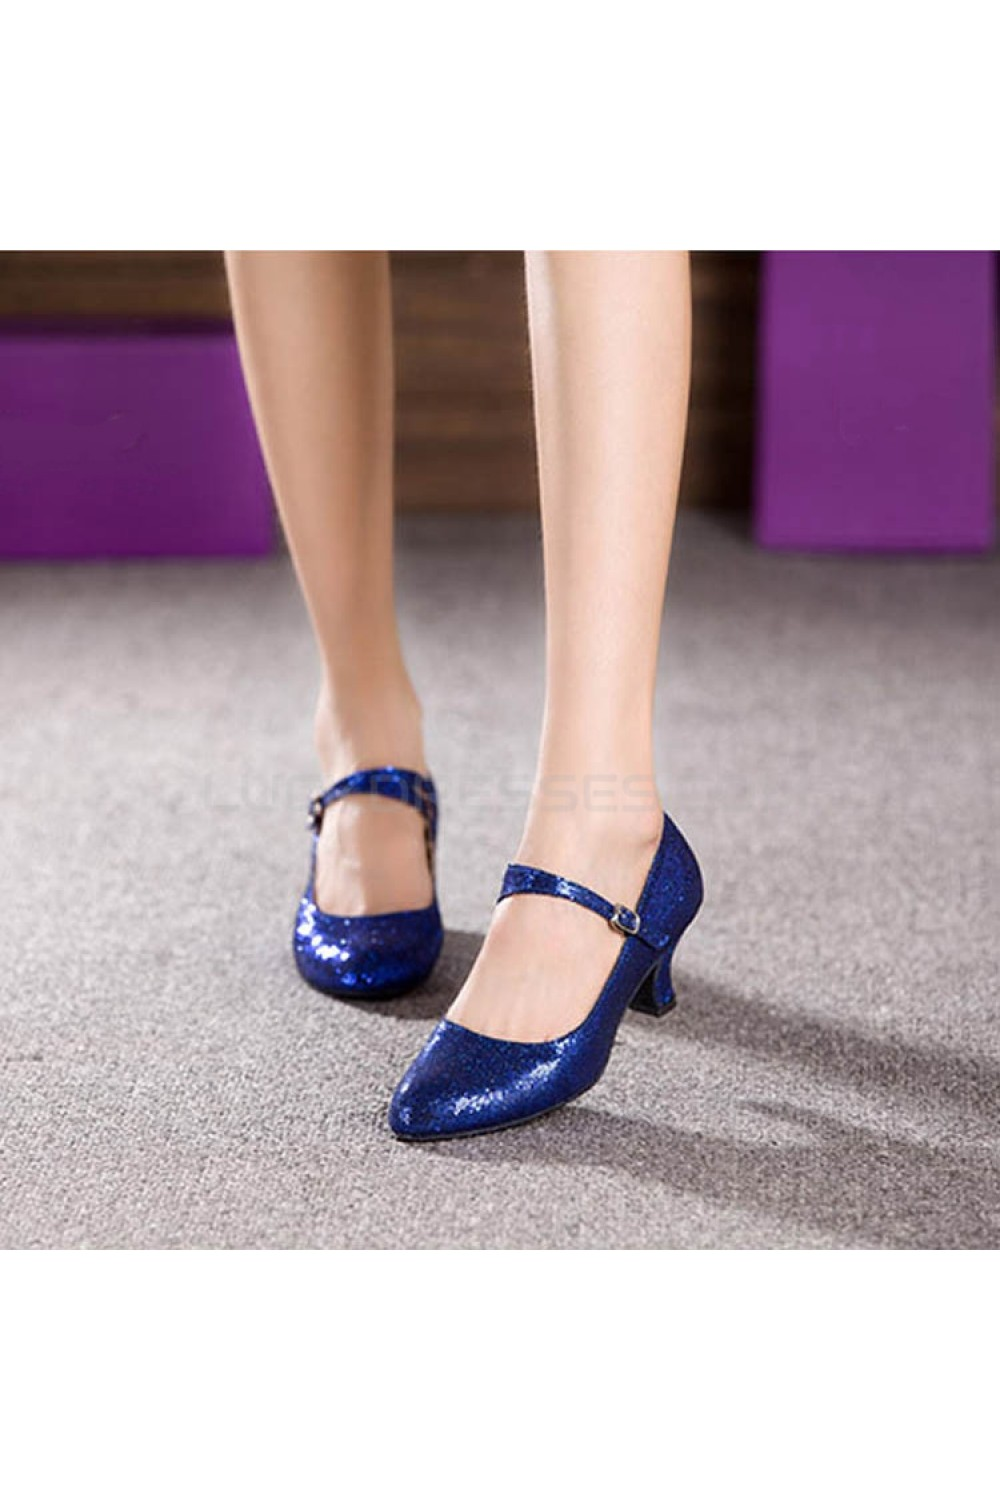 Women S Blue Sparkling Glitter Heels With Buckle Latin